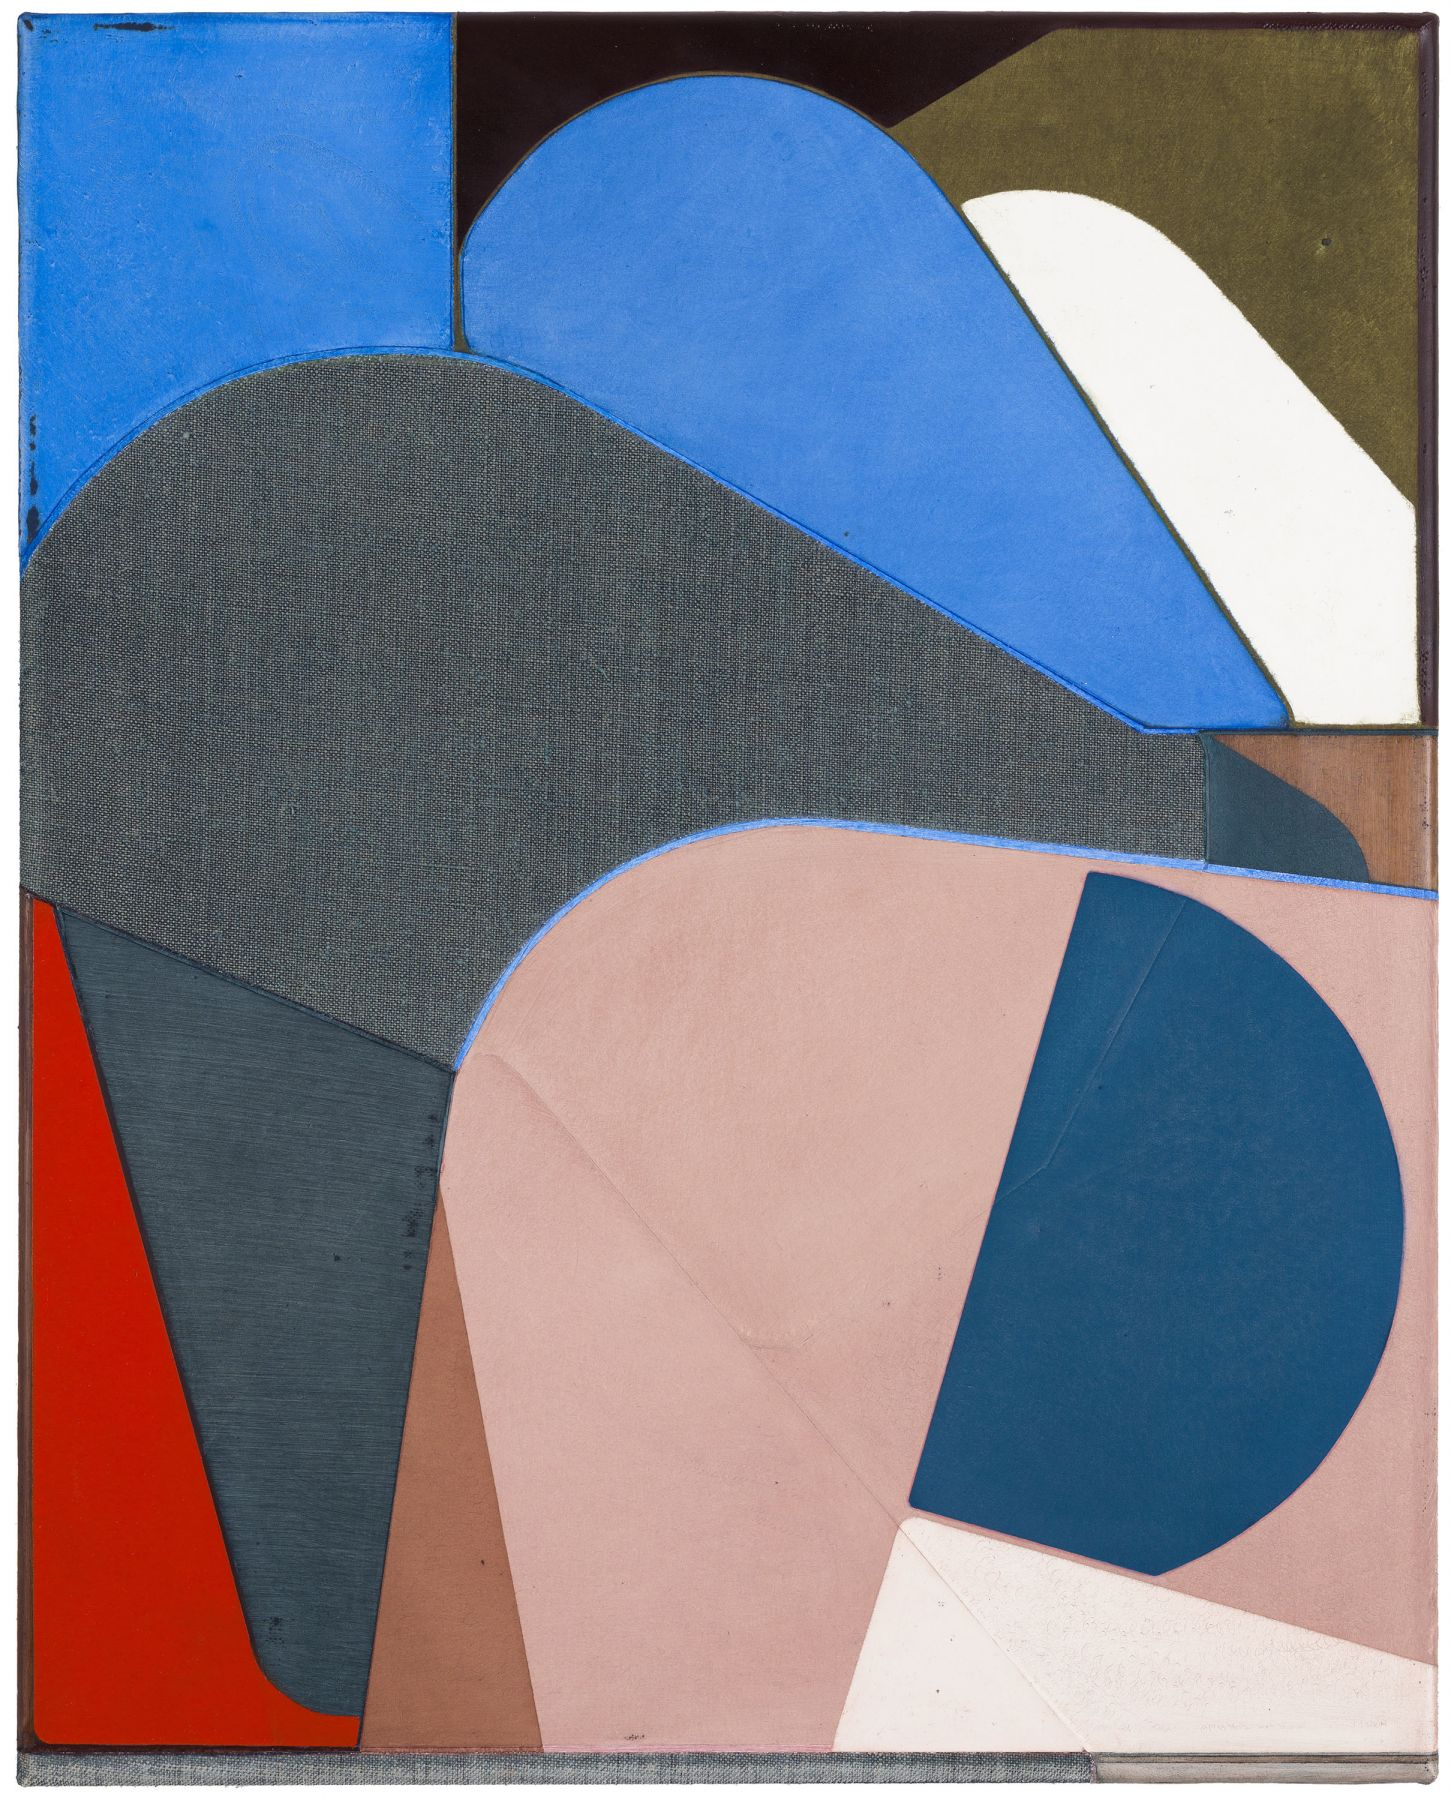 an oil painting of geometric forms by Svenja Deininger